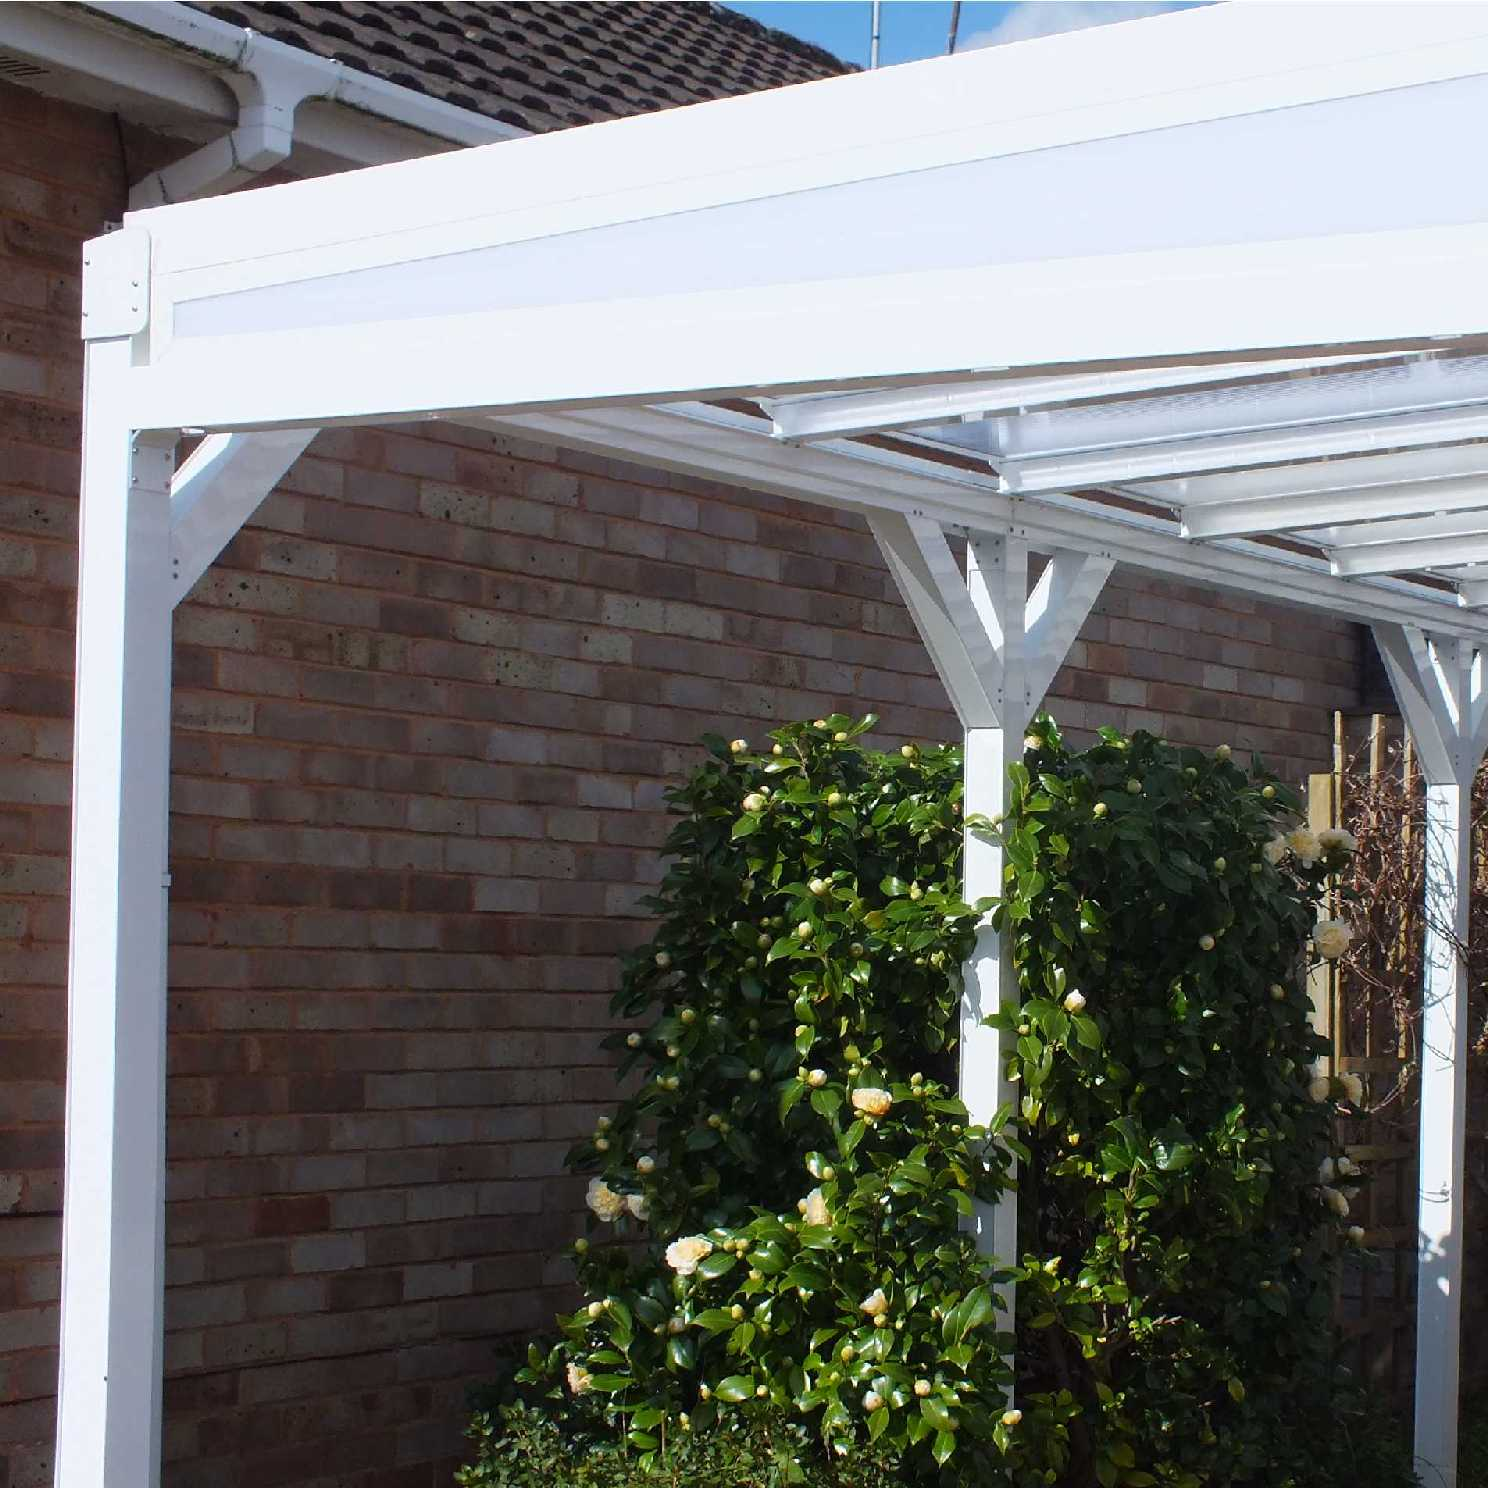 Omega Smart Lean-To Canopy with 16mm Polycarbonate Glazing - 5.9m (W) x 4.5m (P), (3) Supporting Posts from Omega Build